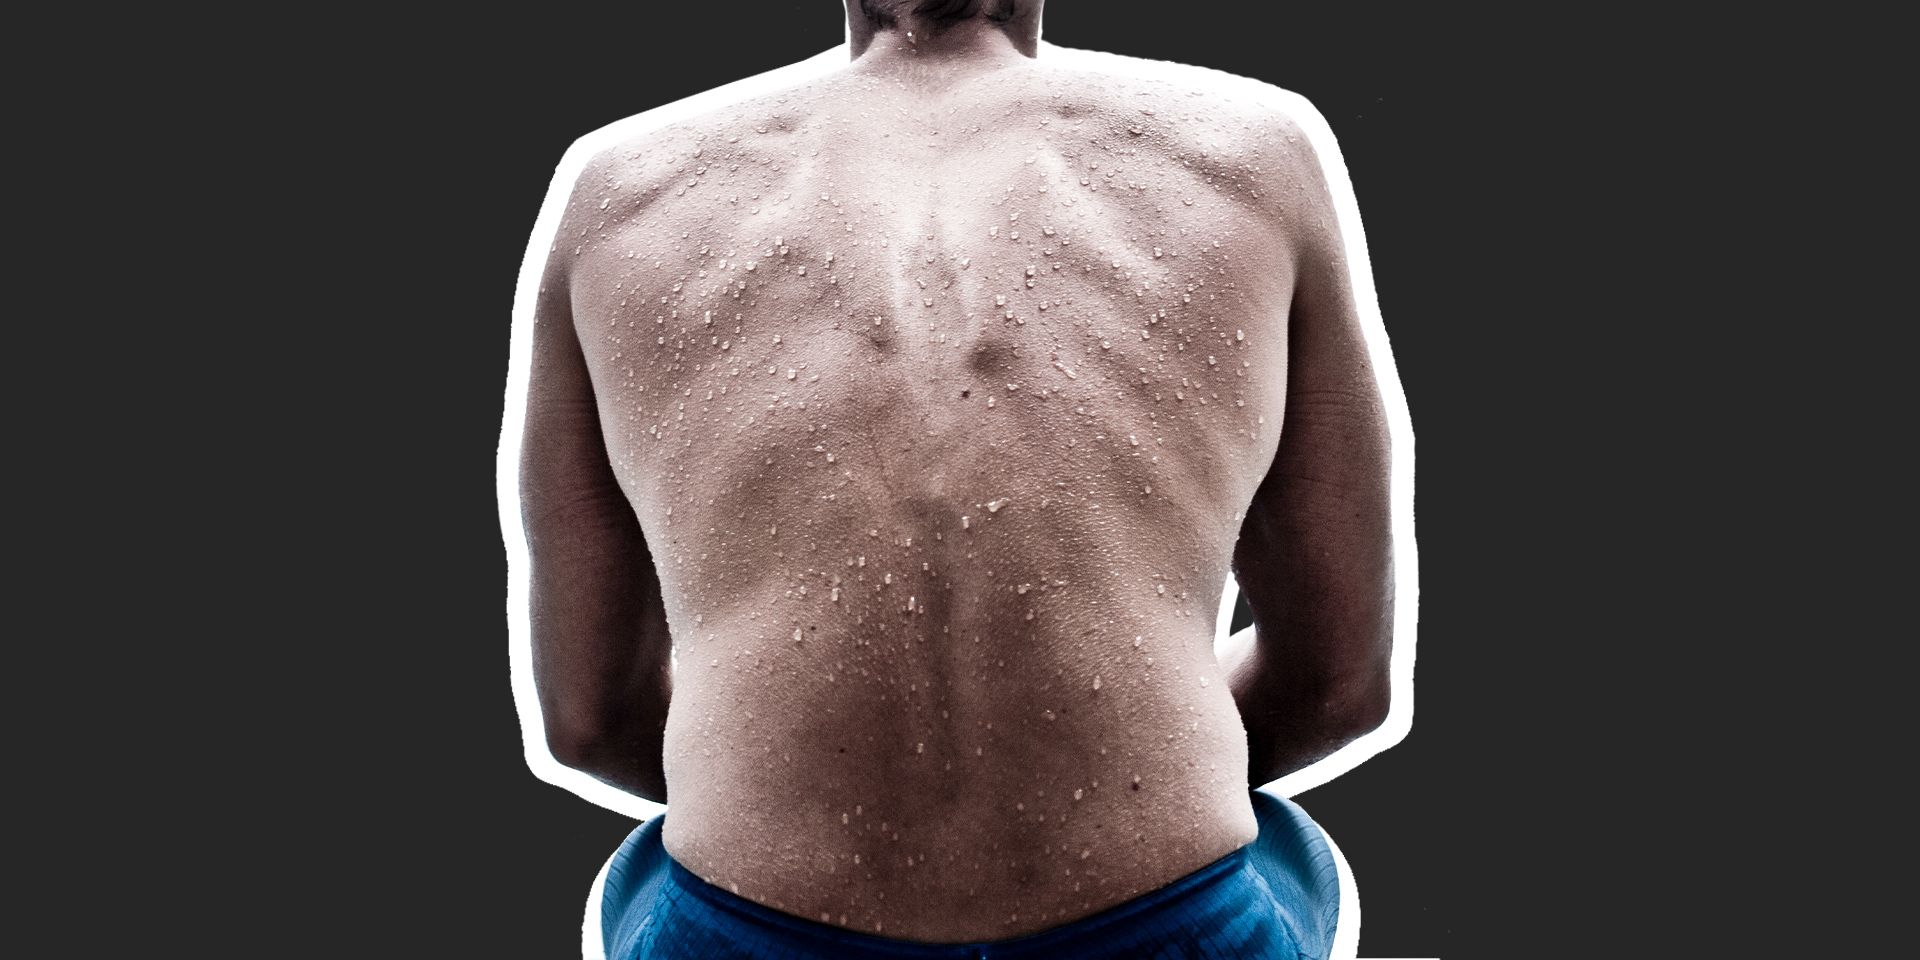 How To Get Rid of Back Acne For Good, According to an Expert